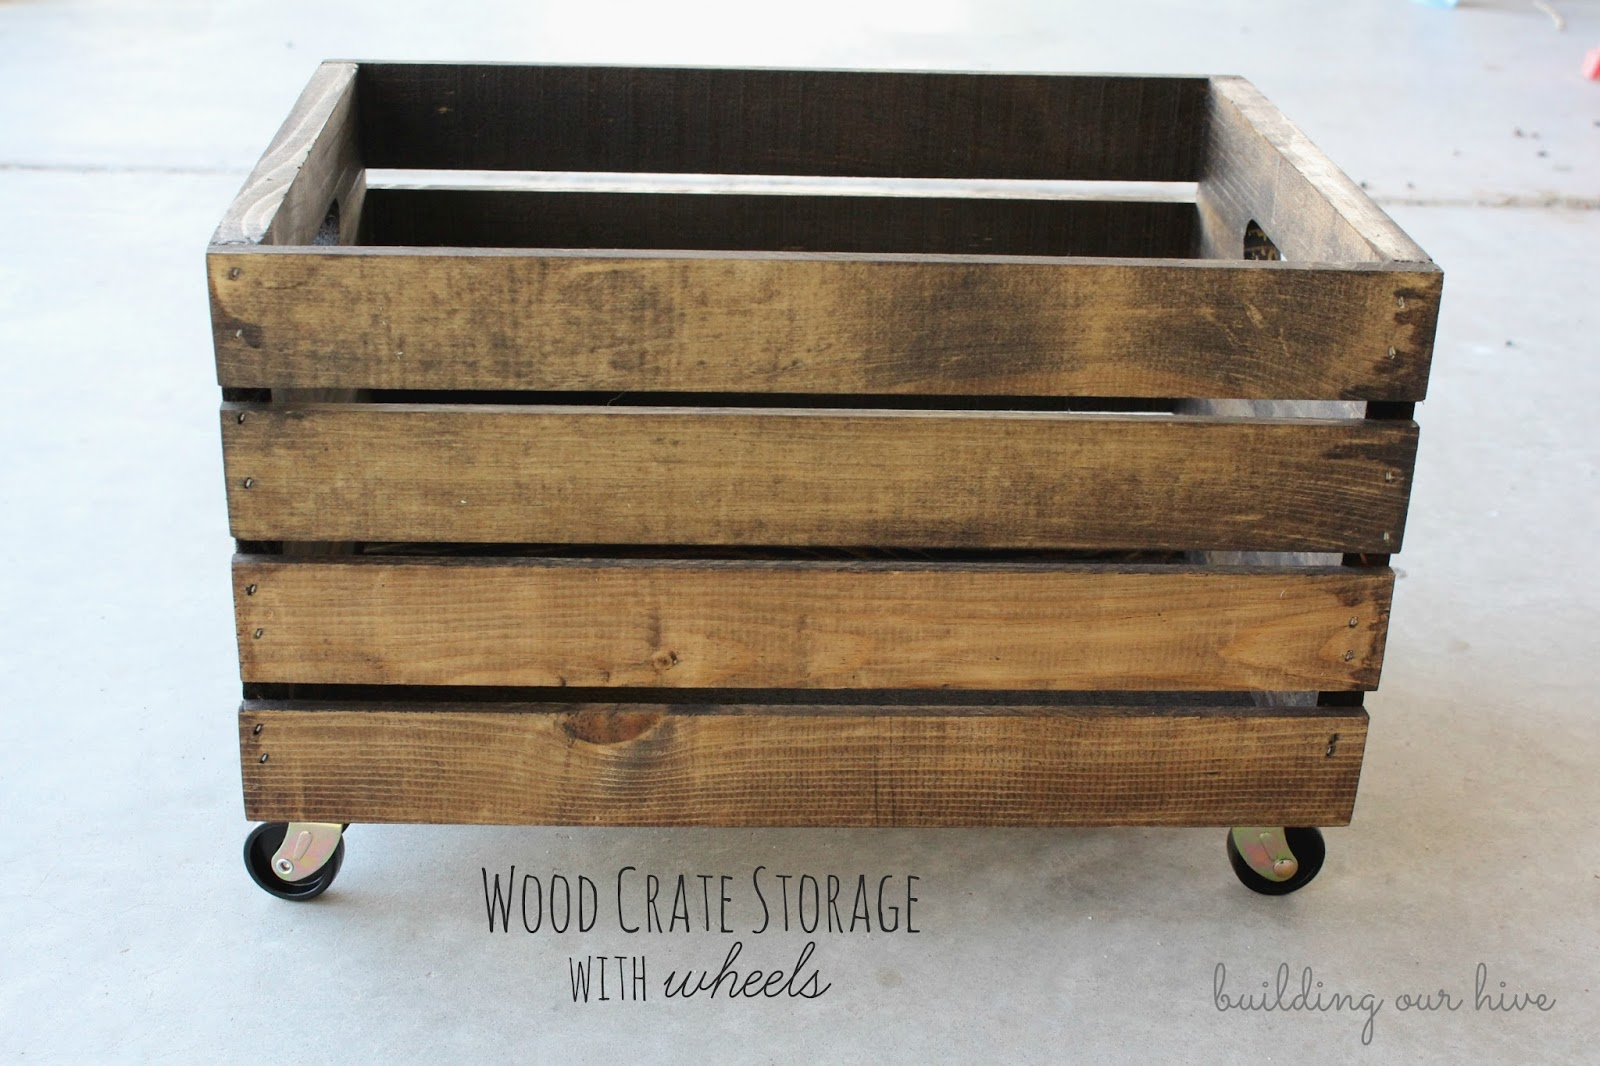 Wood Crate Storage With Wheels